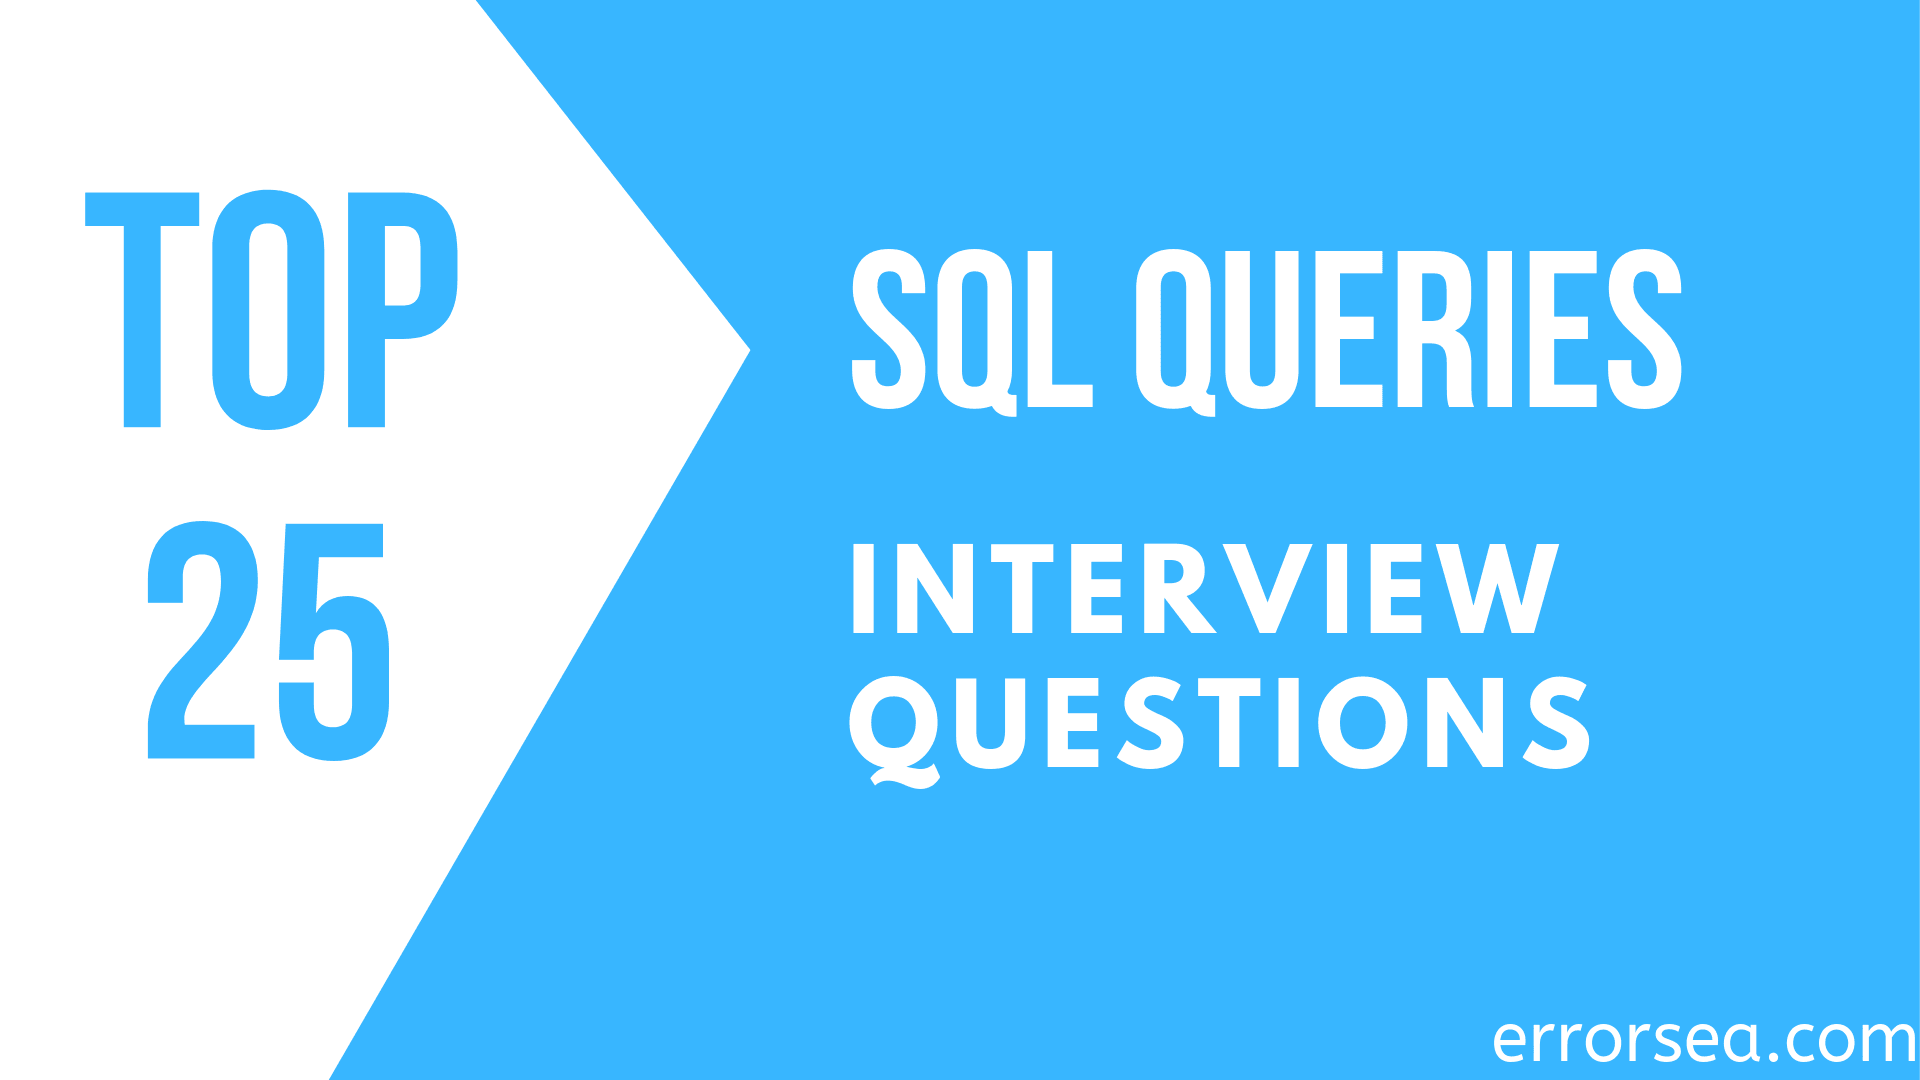 Top 25 SQL Queries Interview Questions